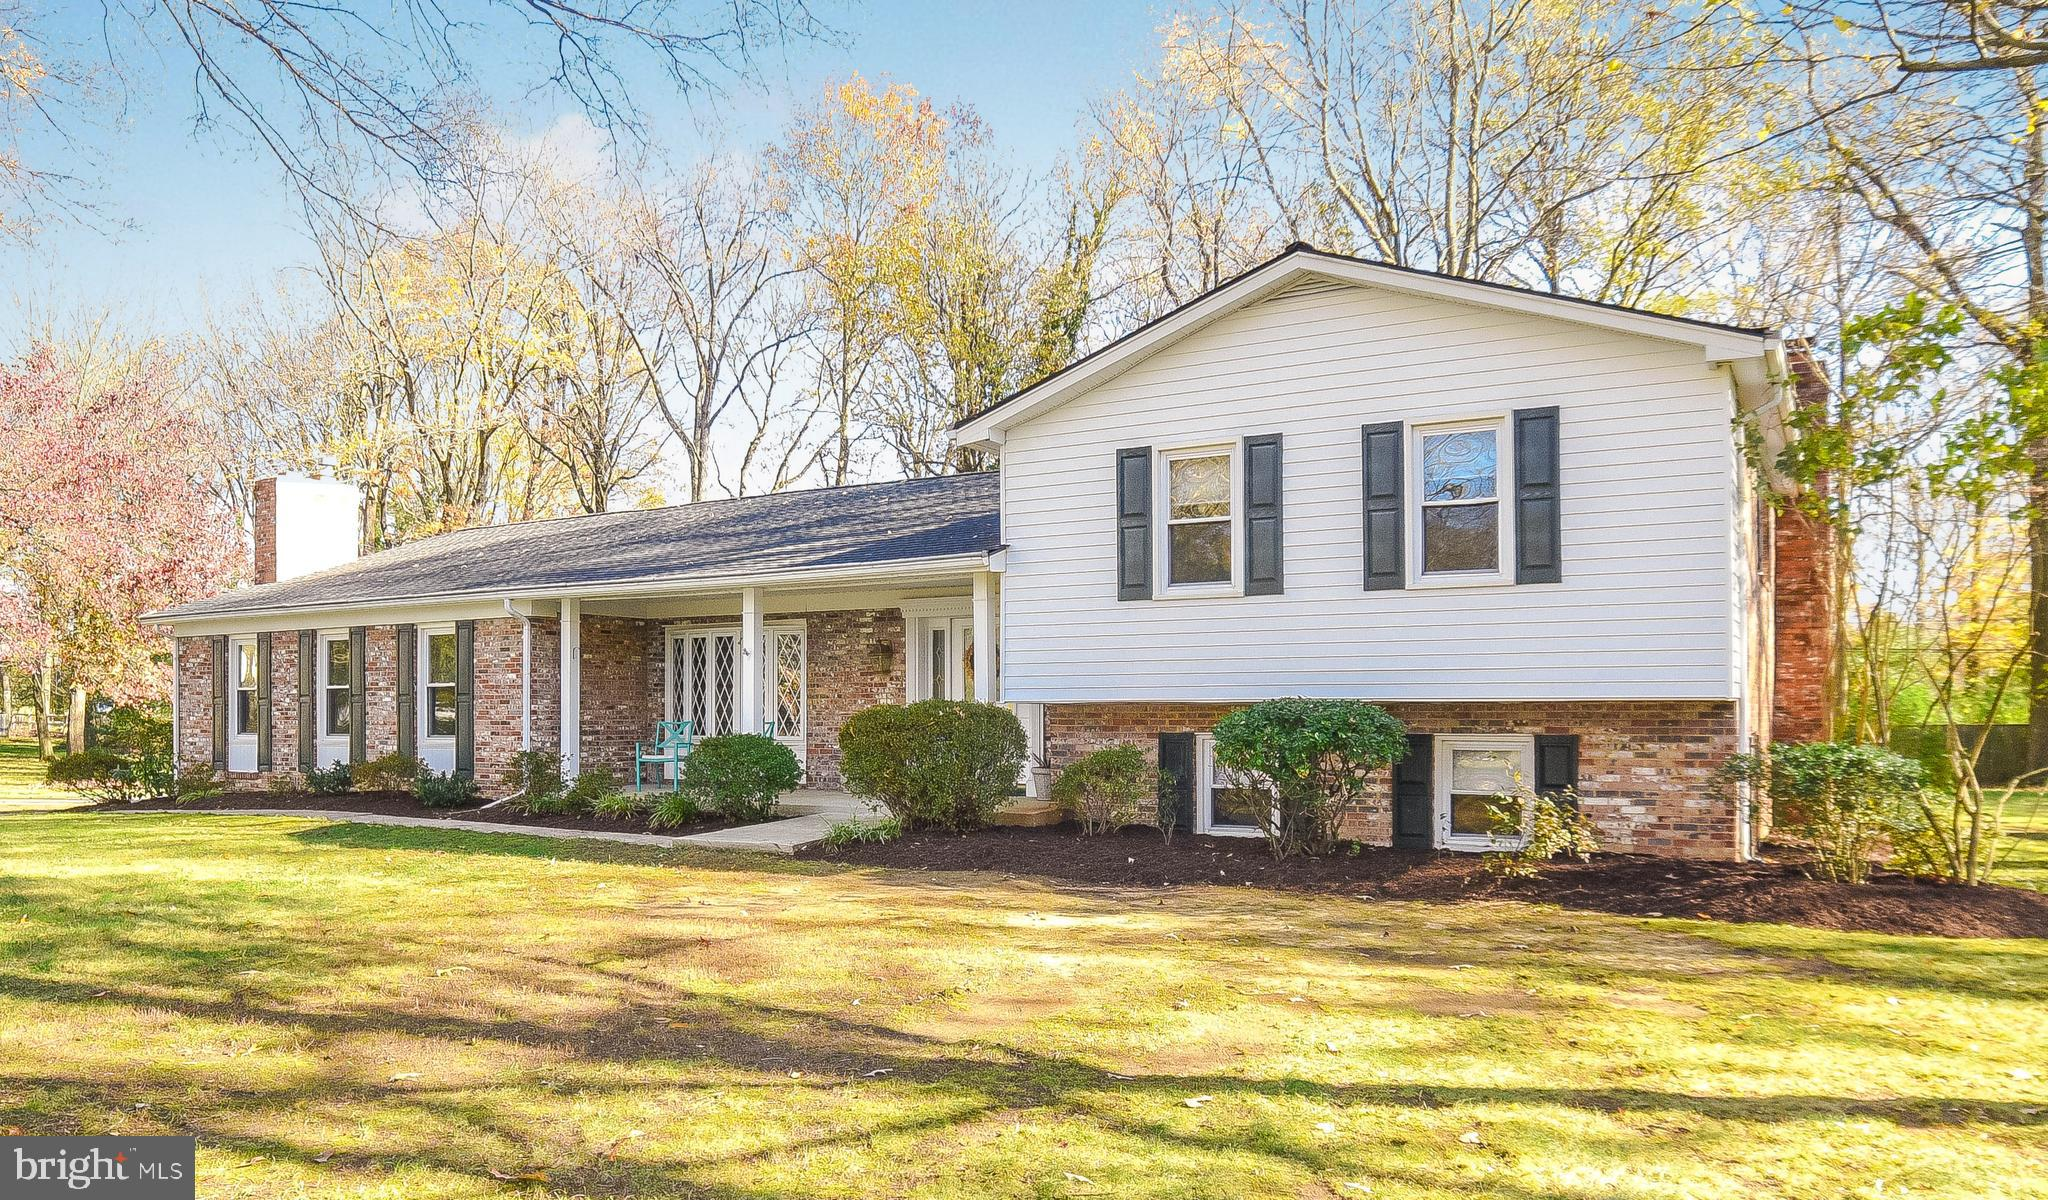 Welcome to this beautiful home located just minutes from Downtown Annapolis with plenty of shops and